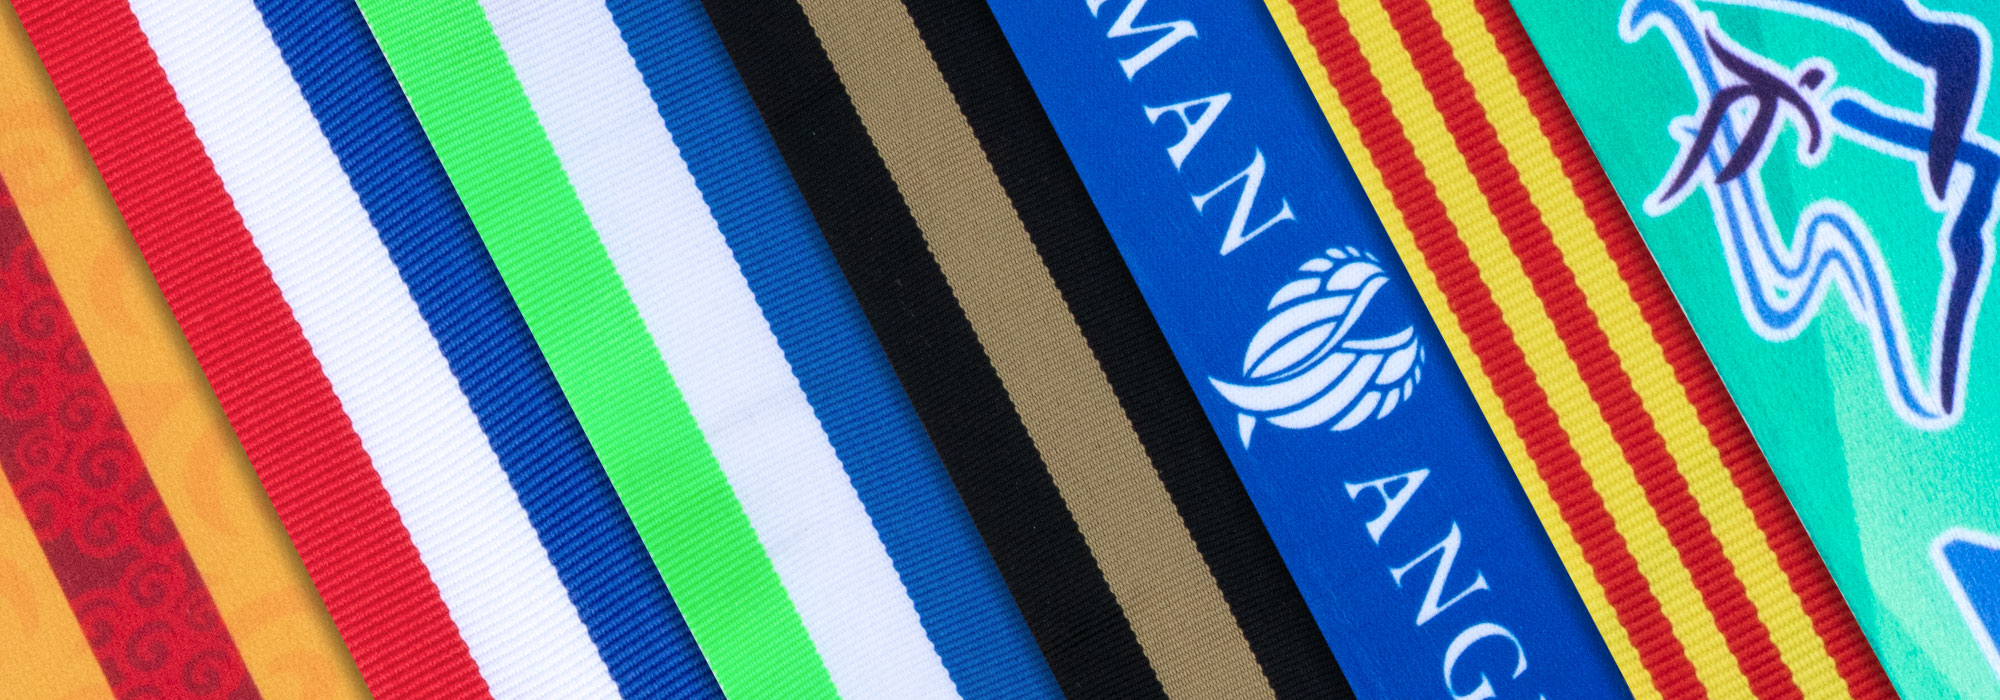 variety of colorful ribbons